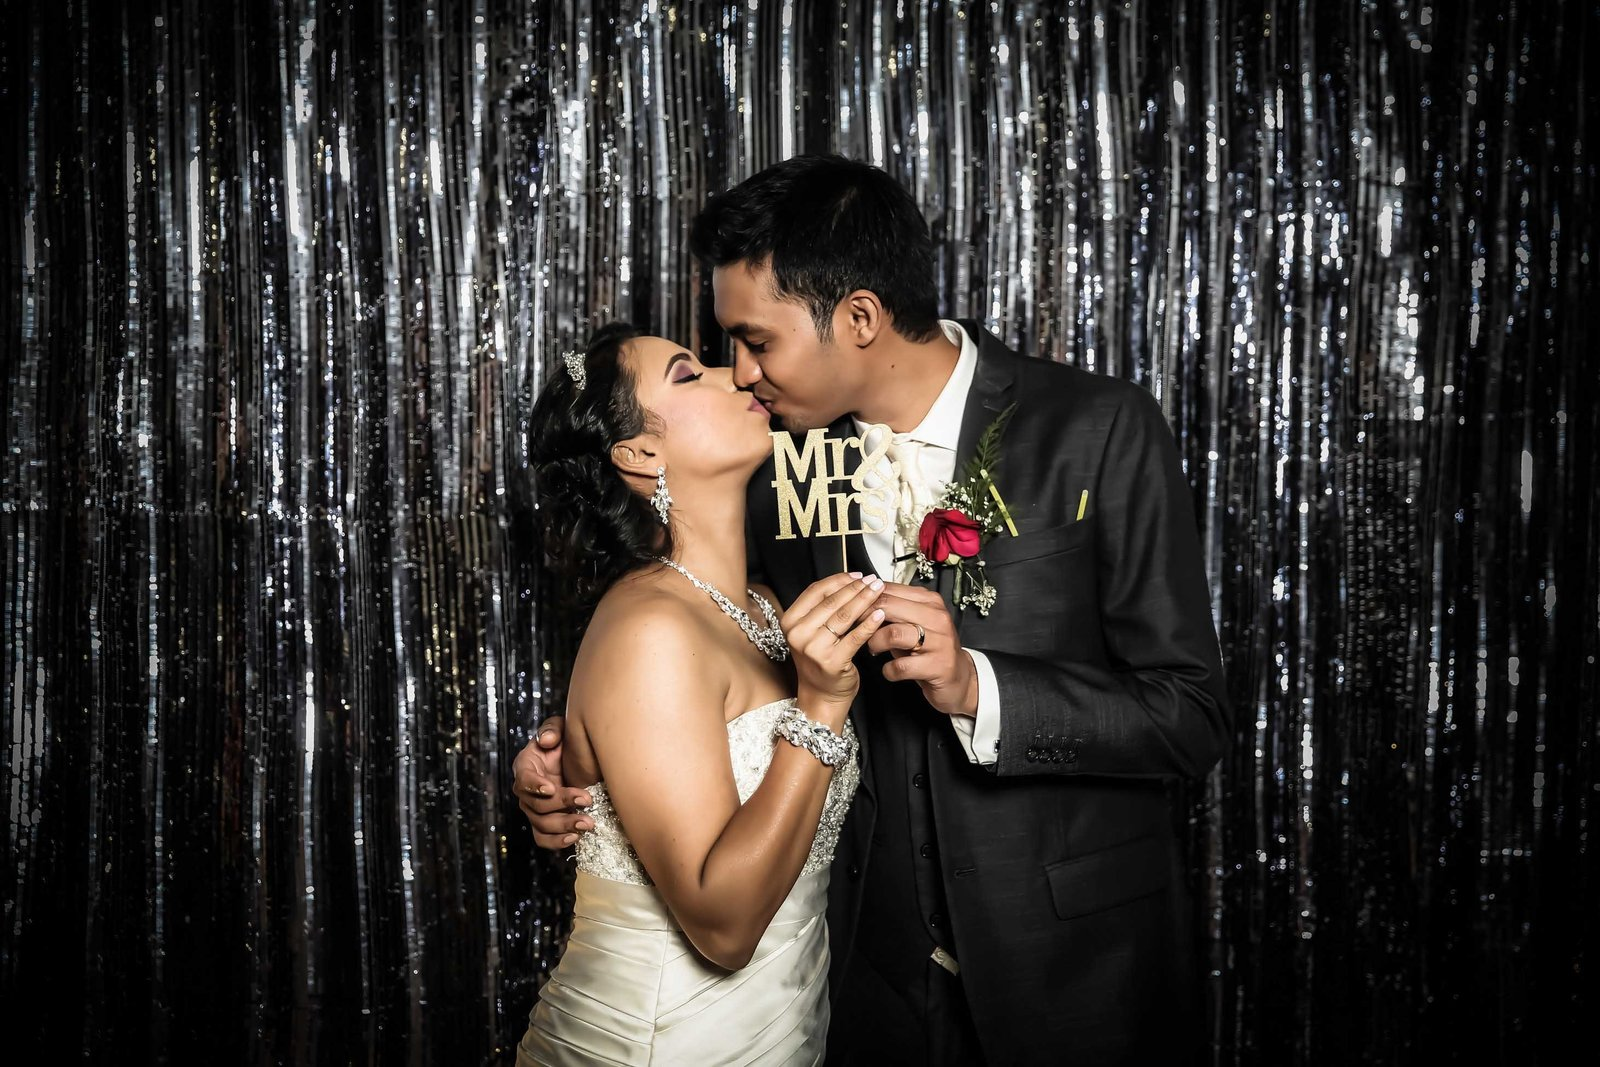 Bride and groom kiss at photobooth. Photo by Ross Photography, Trinidad, W.I..